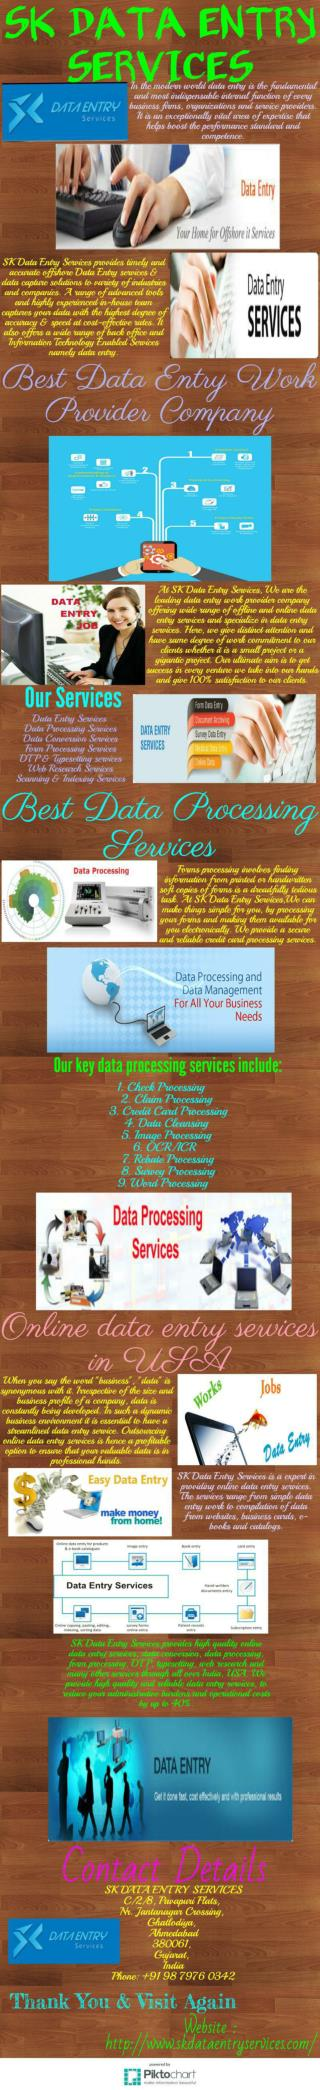 Leading Data Processing Services